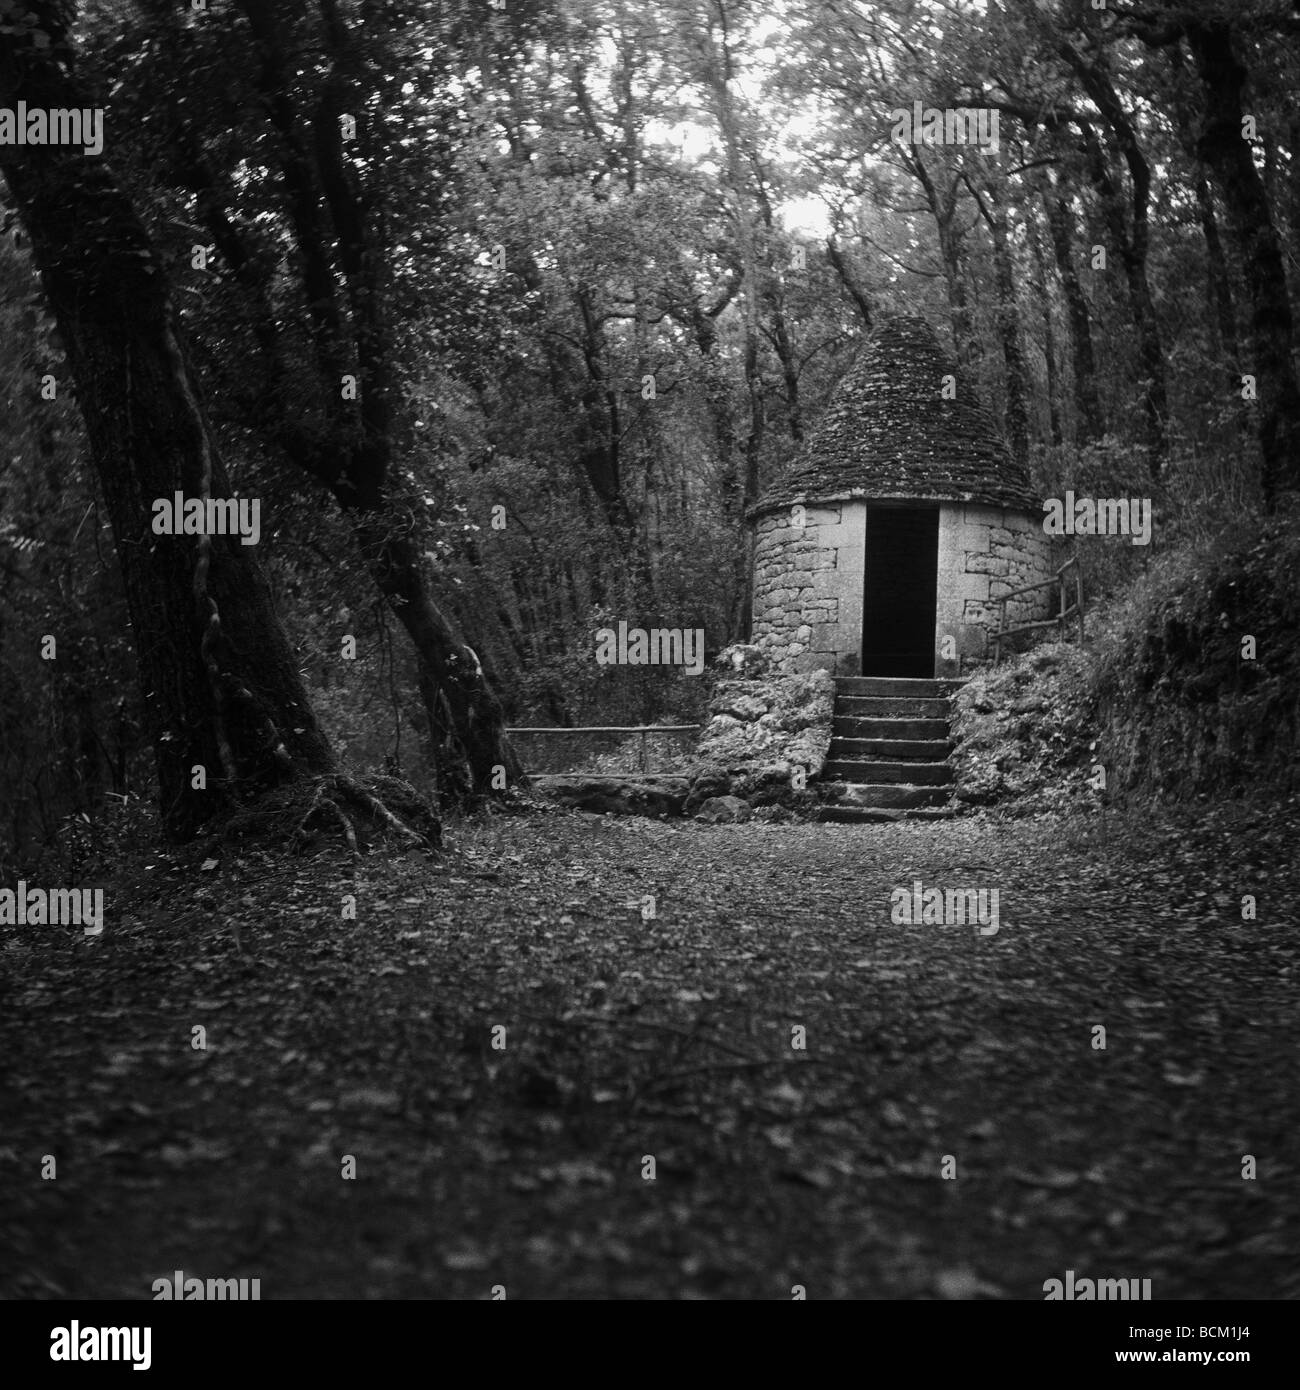 Small stone building in woods, black and white - Stock Image